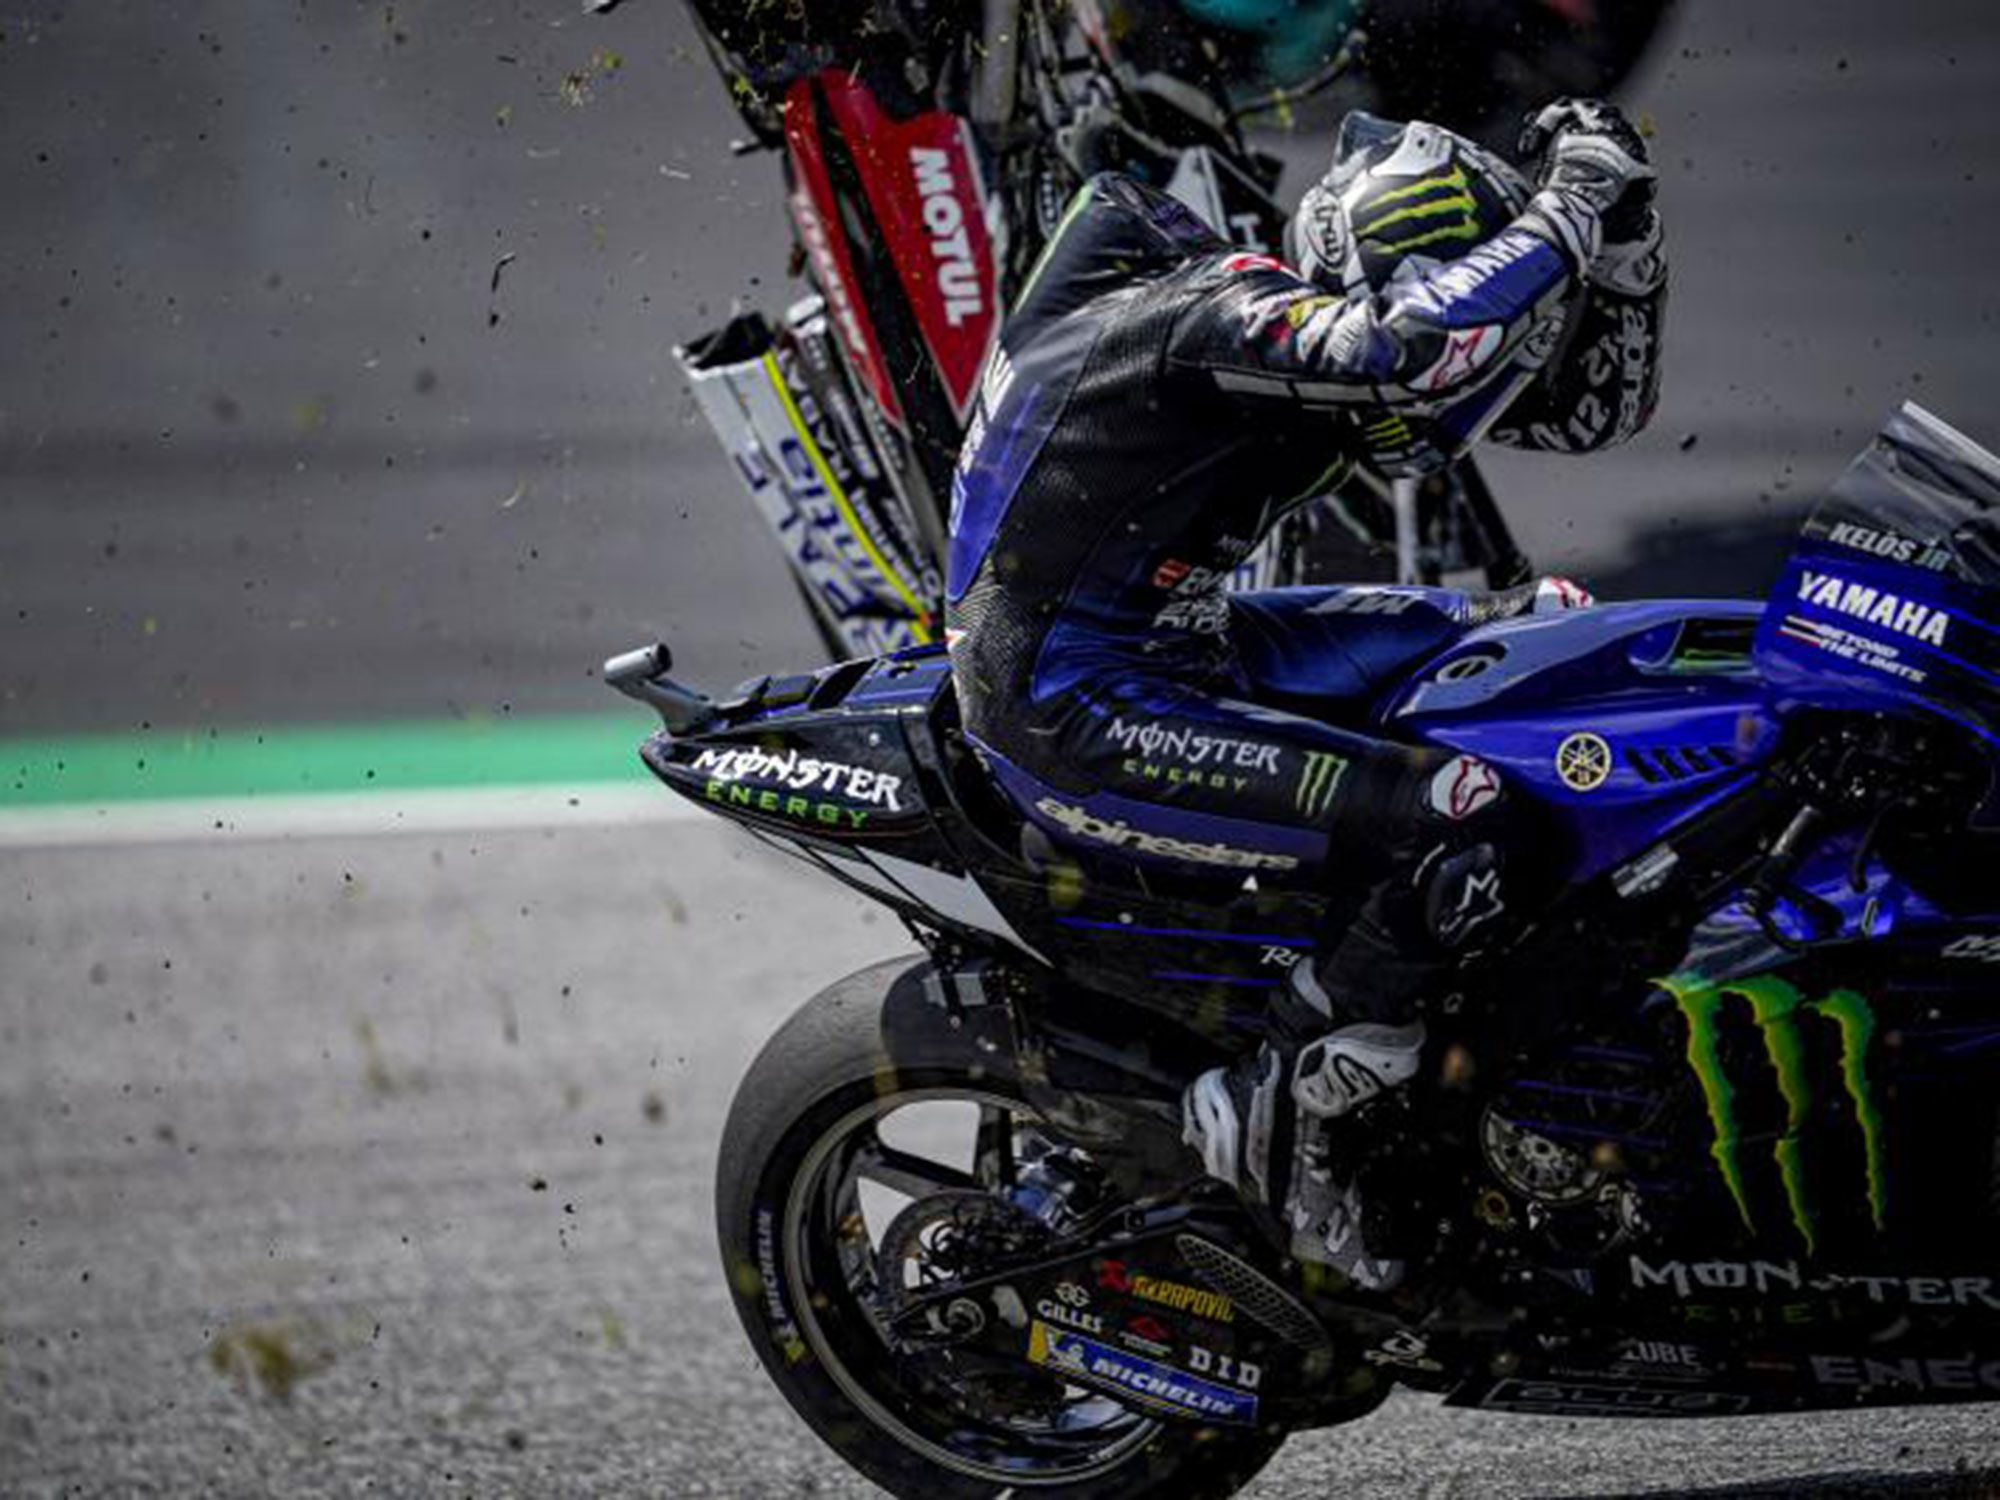 How close was Johan Zarco's Ducati to Maverick Viñales? Close enough that the seasoned professional let go of the handlebars—a clear indication he thought a contact was imminent.